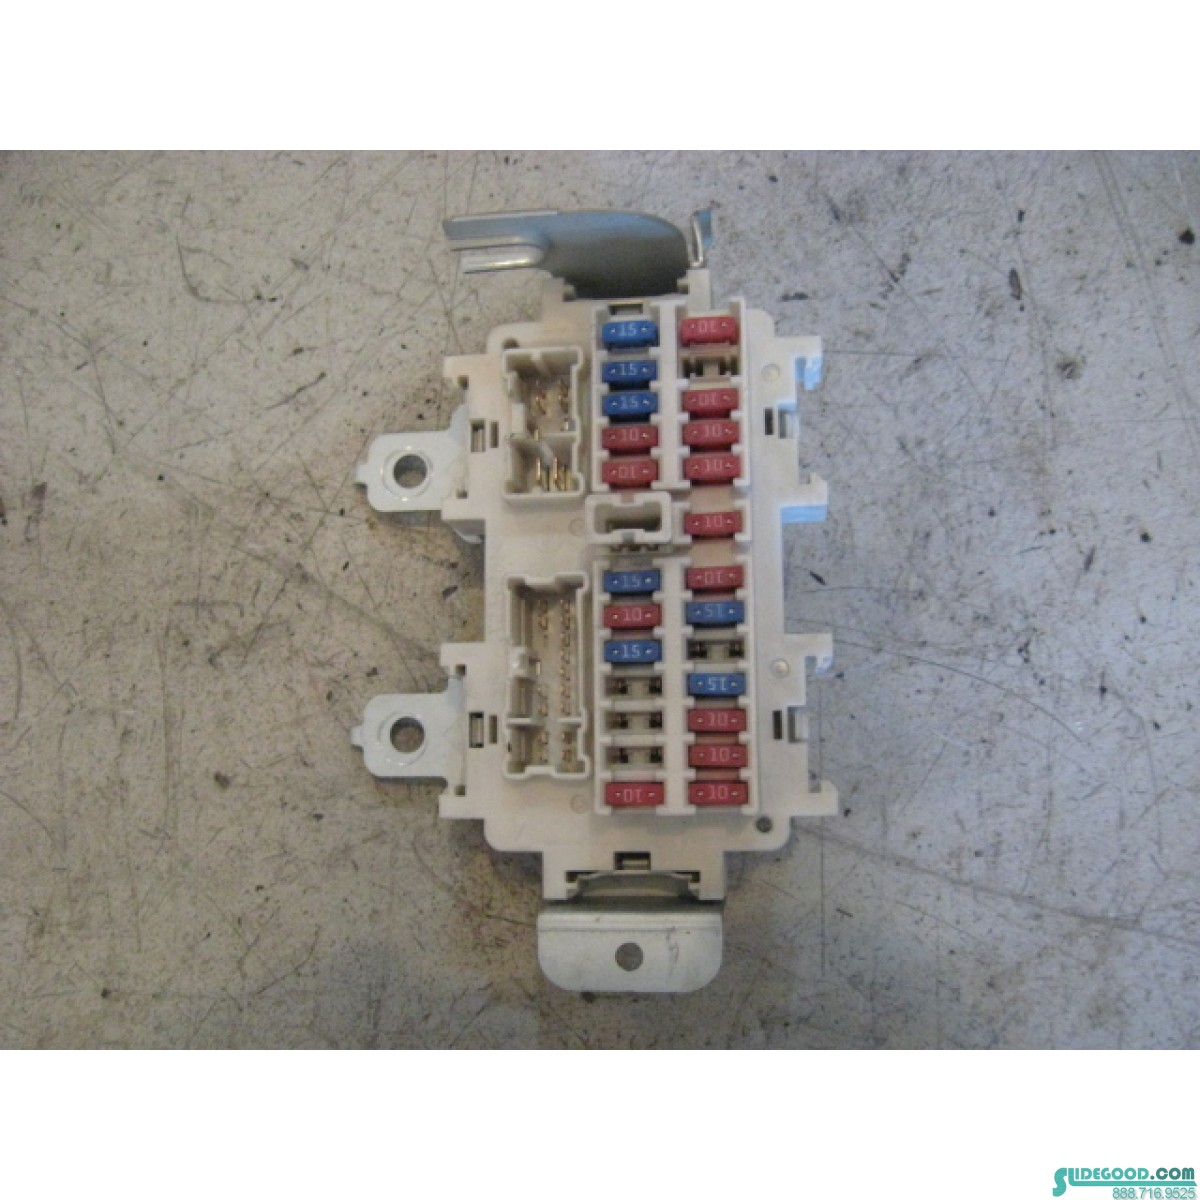 9736_01 nissan 350z interior fuse box r9736 nissan 350z fuse box diagram at panicattacktreatment.co